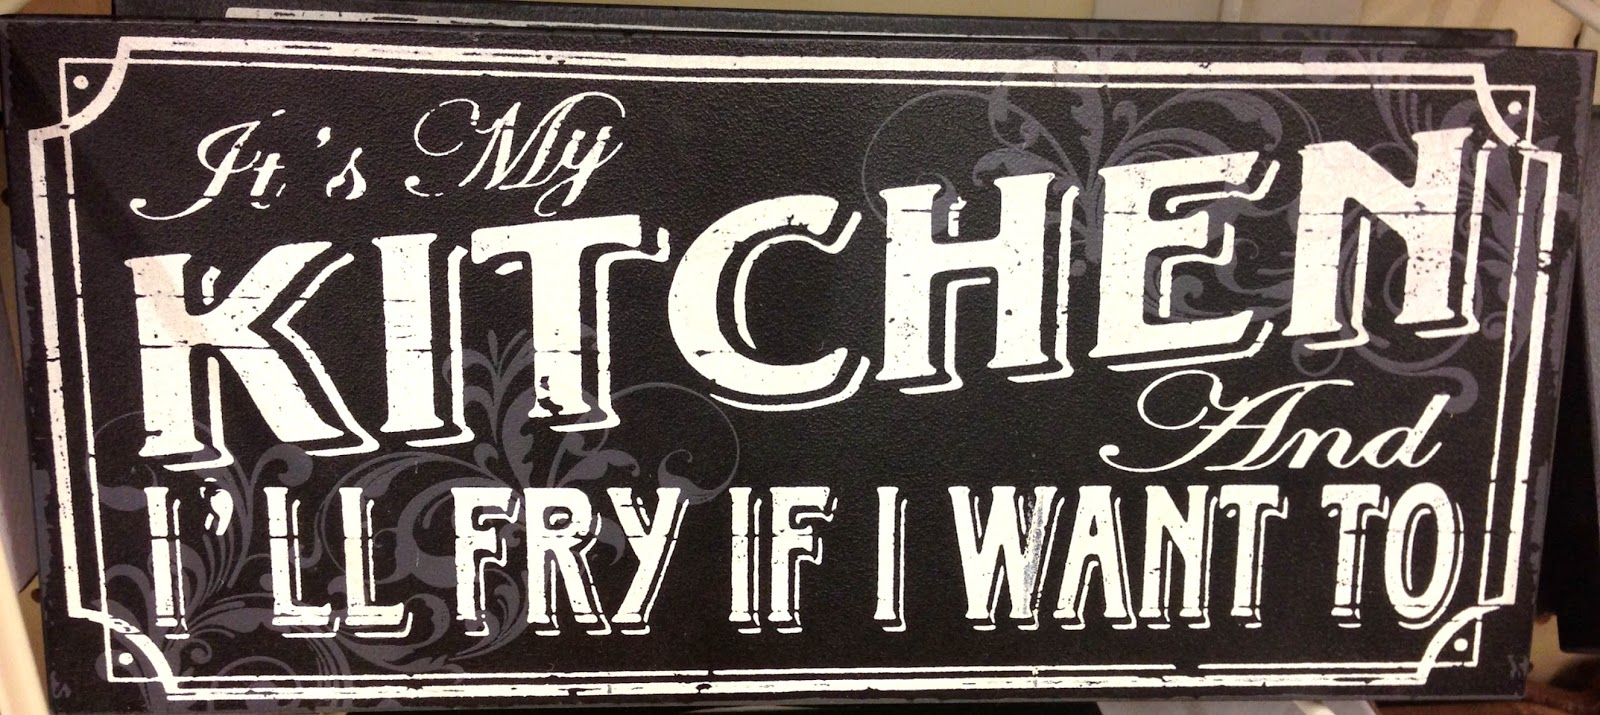 eatkitchen zoom signs eat gift yall all come y signkitchen fullxfull kitchen il listing sign